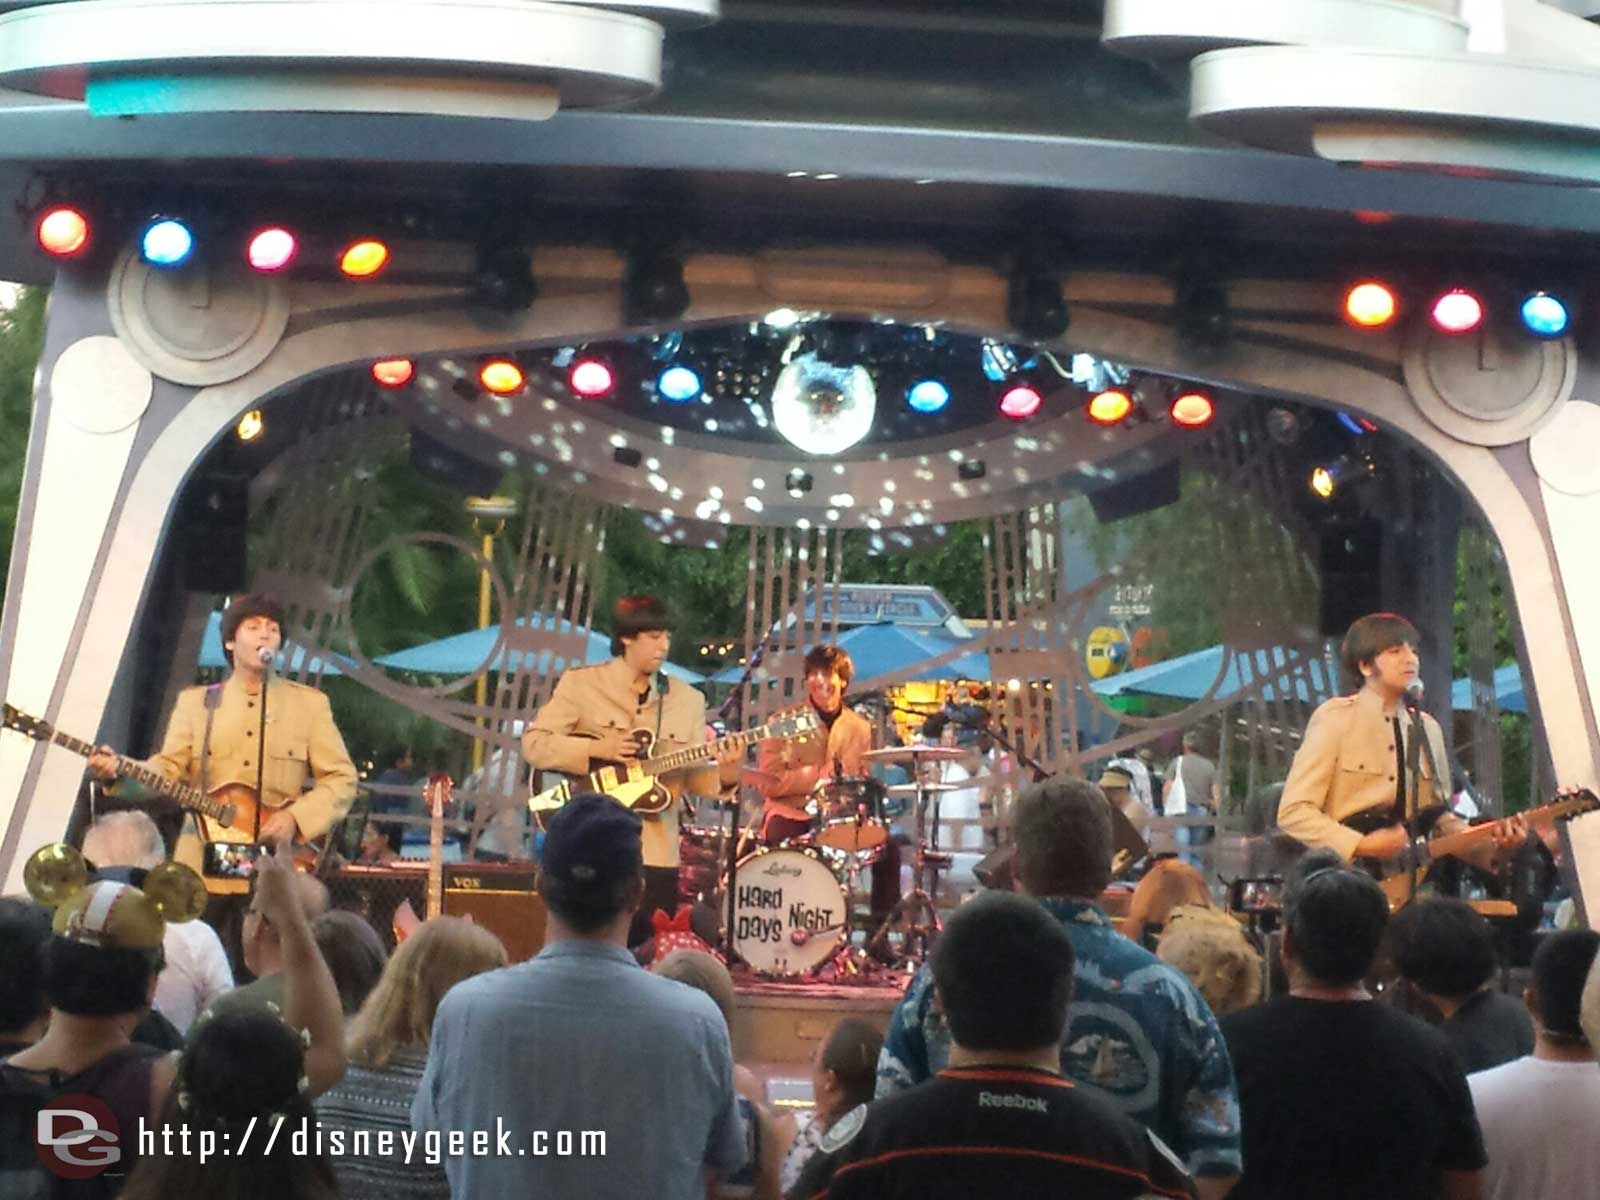 The 2nd show by Hard Days Night at Tomorrowland Terrace #Disneyland